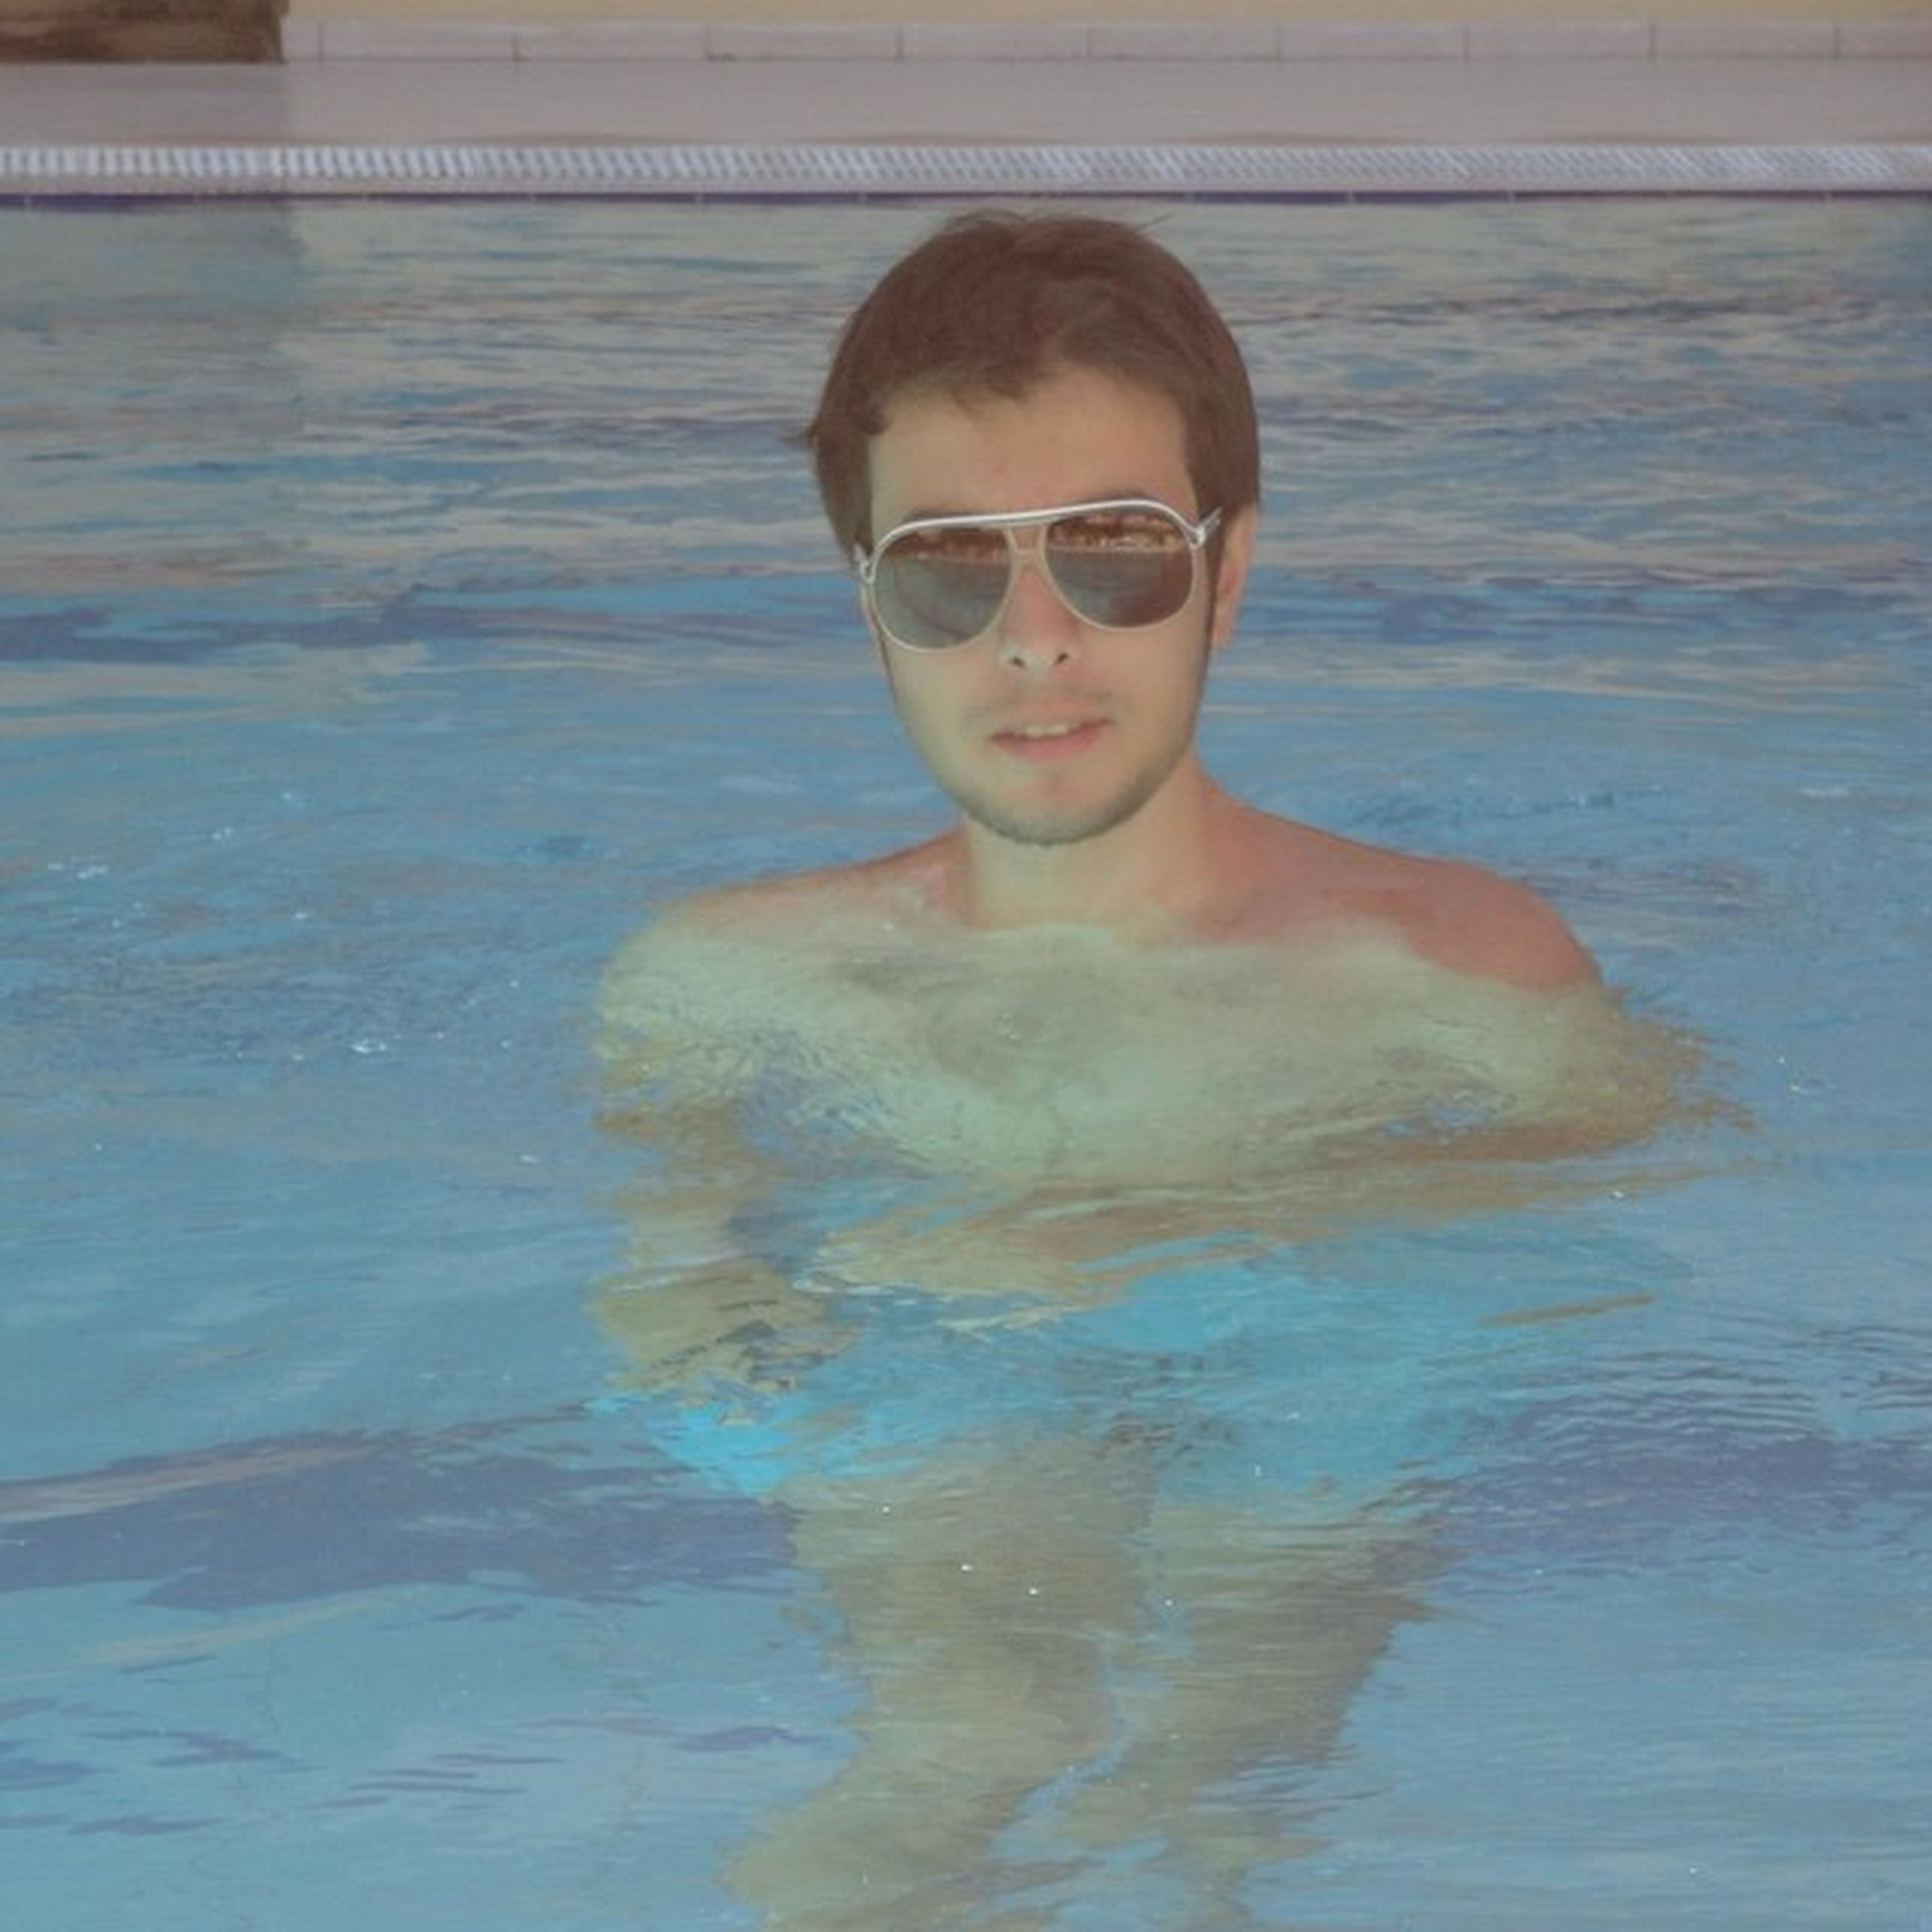 person, portrait, water, lifestyles, looking at camera, leisure activity, young adult, front view, smiling, casual clothing, waist up, swimming pool, happiness, young men, sunglasses, headshot, standing, refreshment